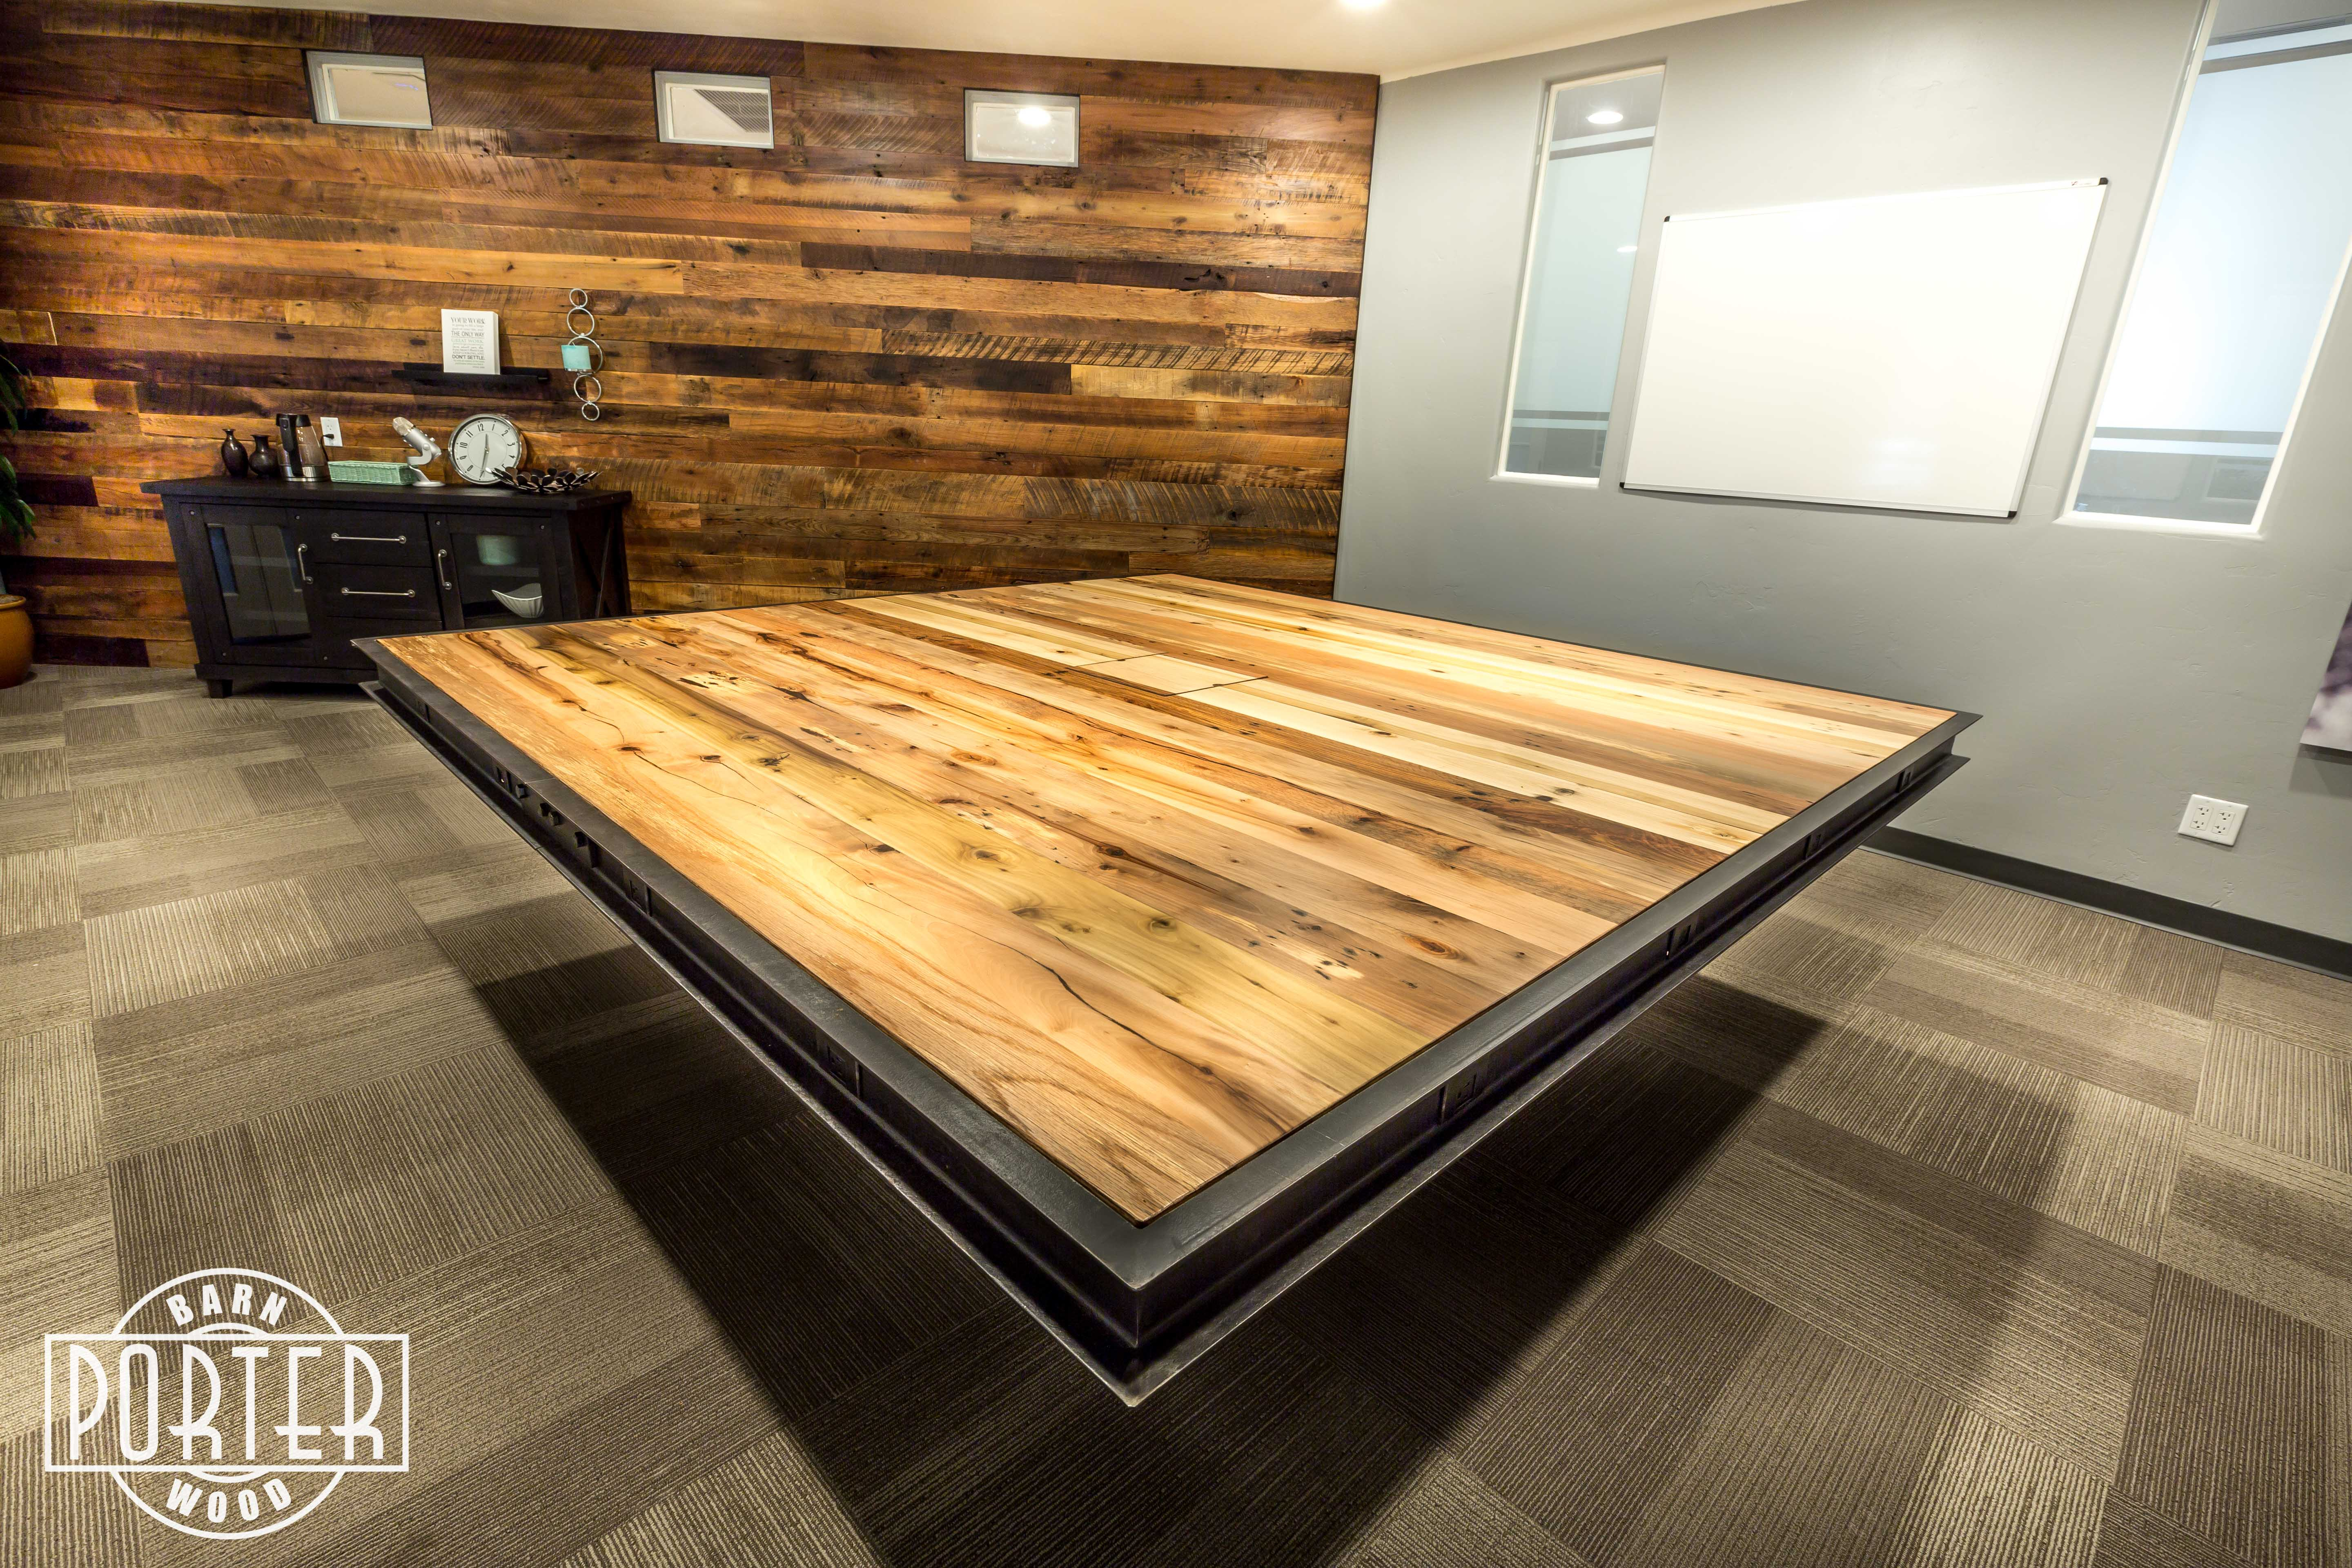 Healthy Lifestyle Brands - Conference Table   Porter Barn Wood